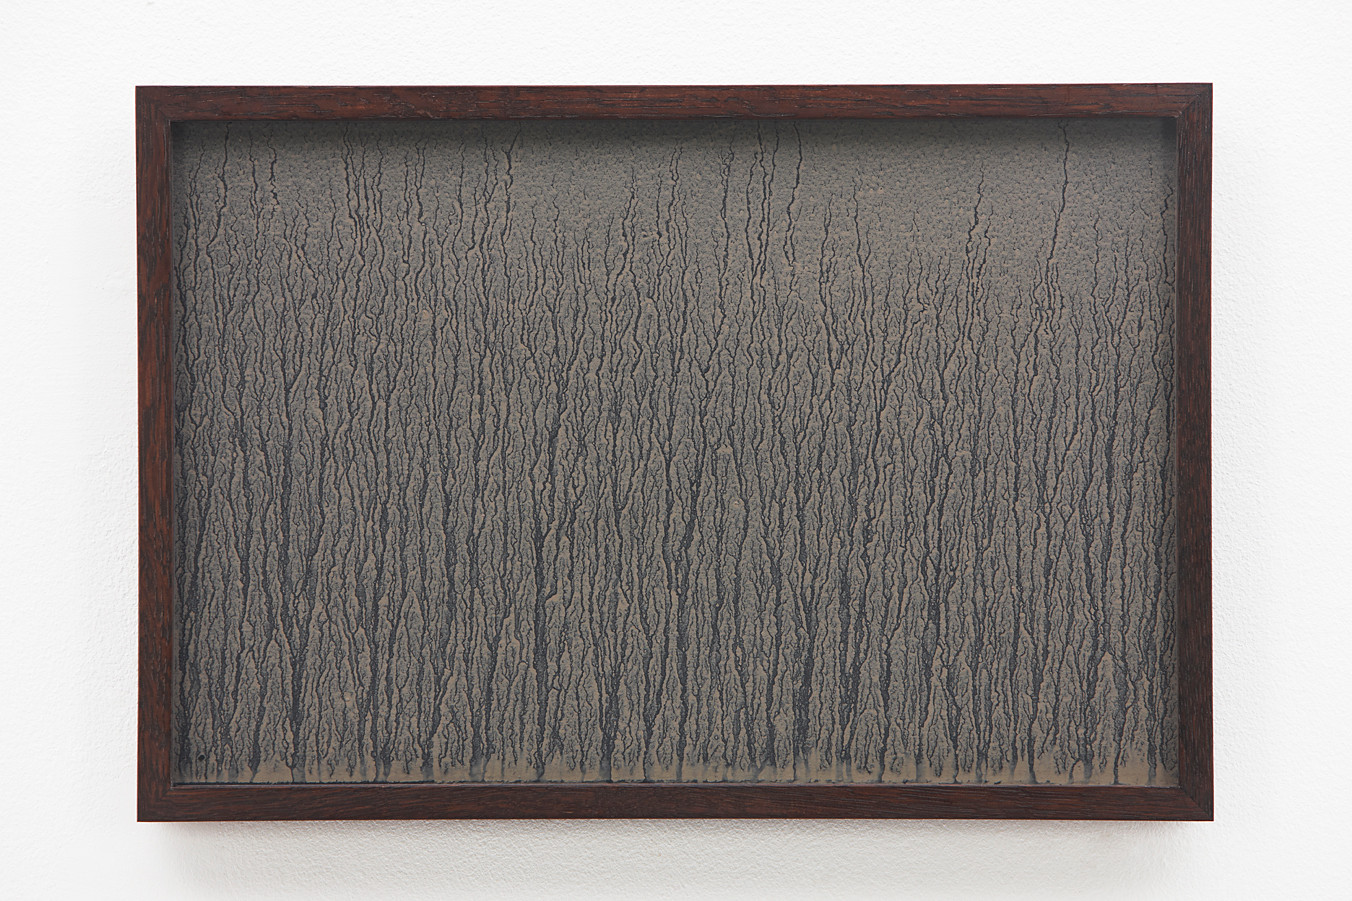 Richard Long | Untitled | 1989 | River Avon Mud on Black Card | 29 x 44 cm